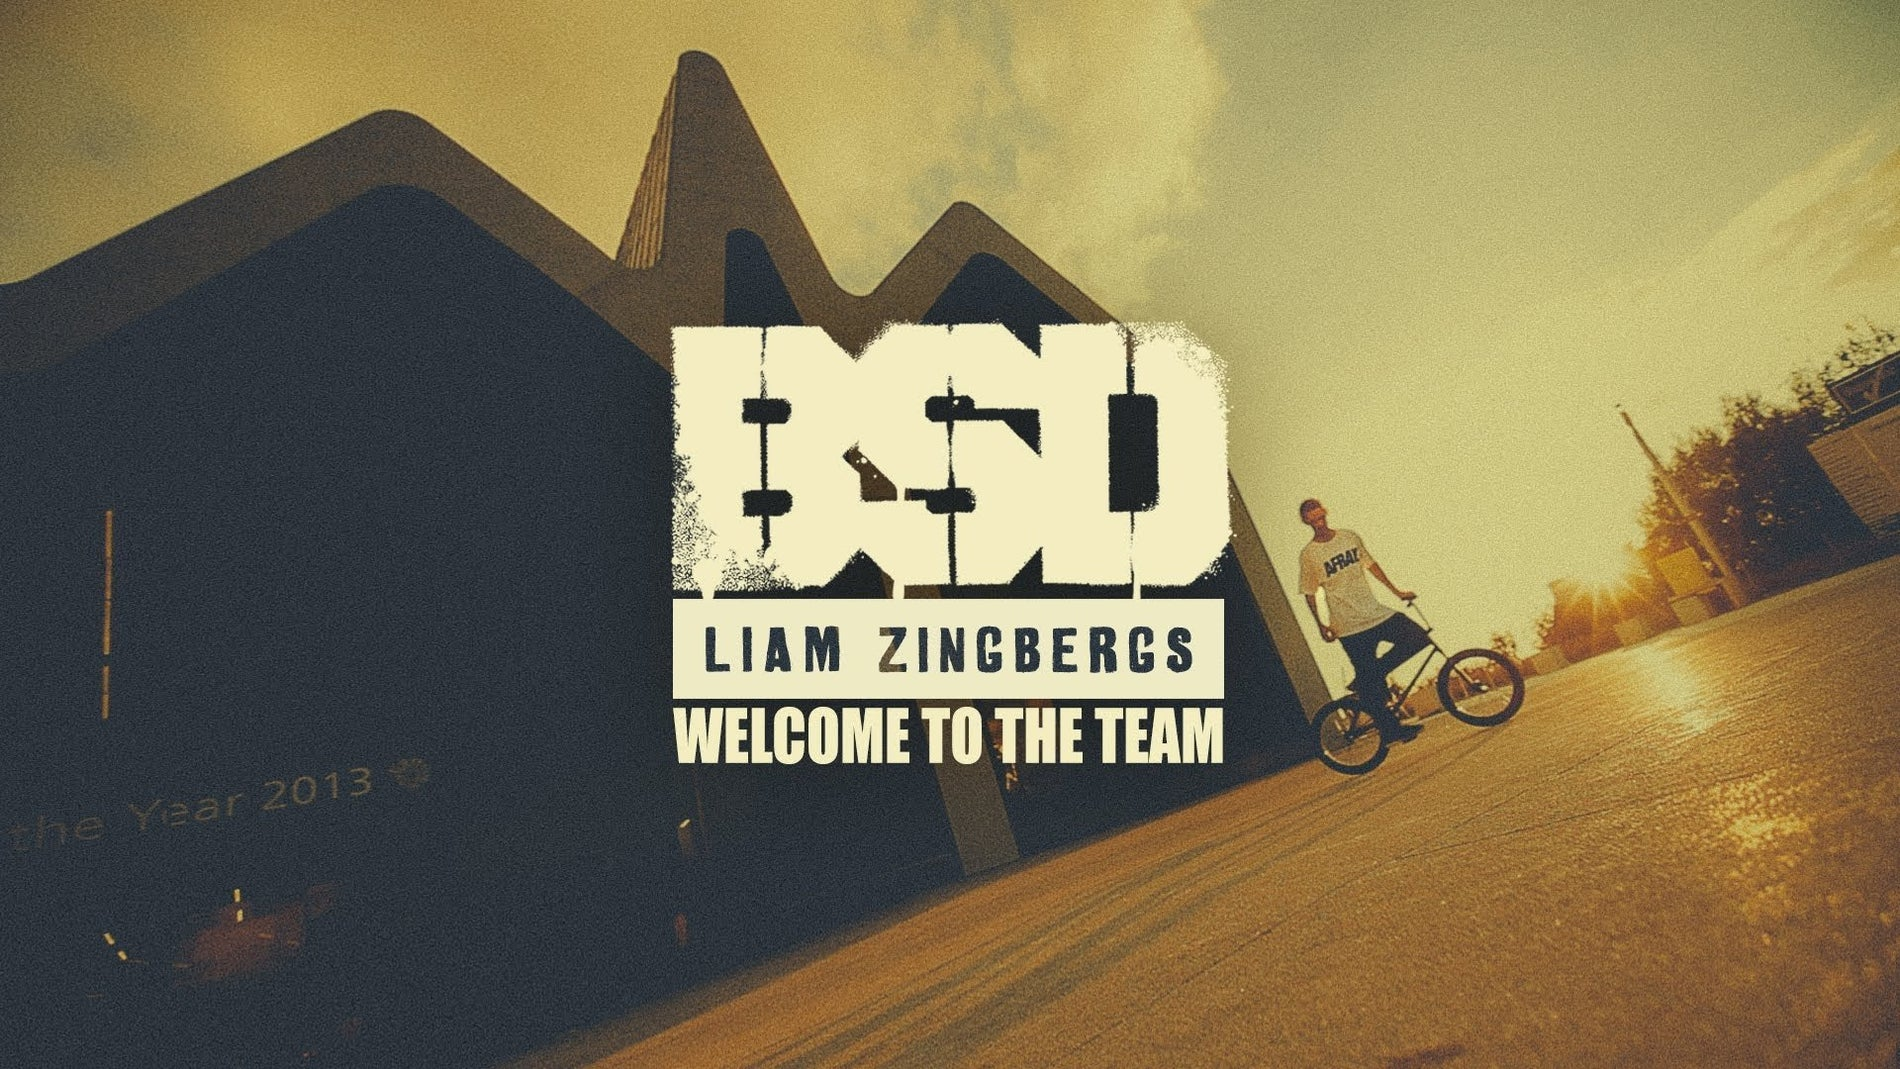 Liam Zingbergs - Welcome to the Team